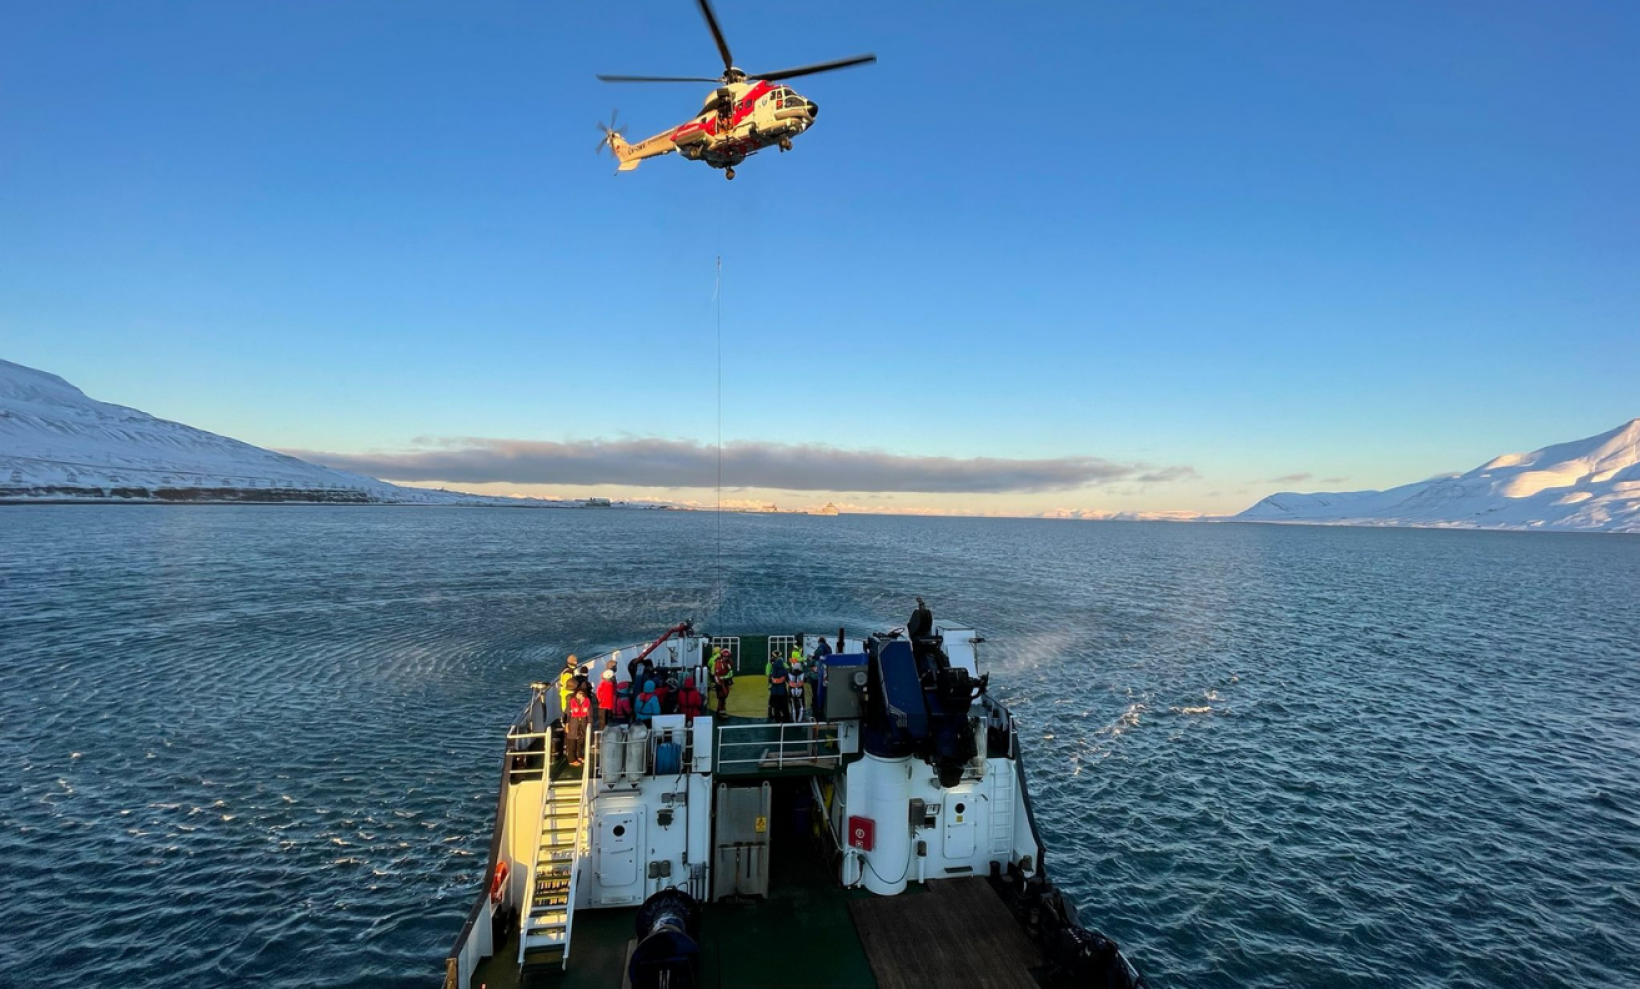 AMRO 2021 which stands for Arctic Mass Rescue Operation was a full-scale live exercise that took place on Friday 8 October 2021 organized by the Norwegian authorities.